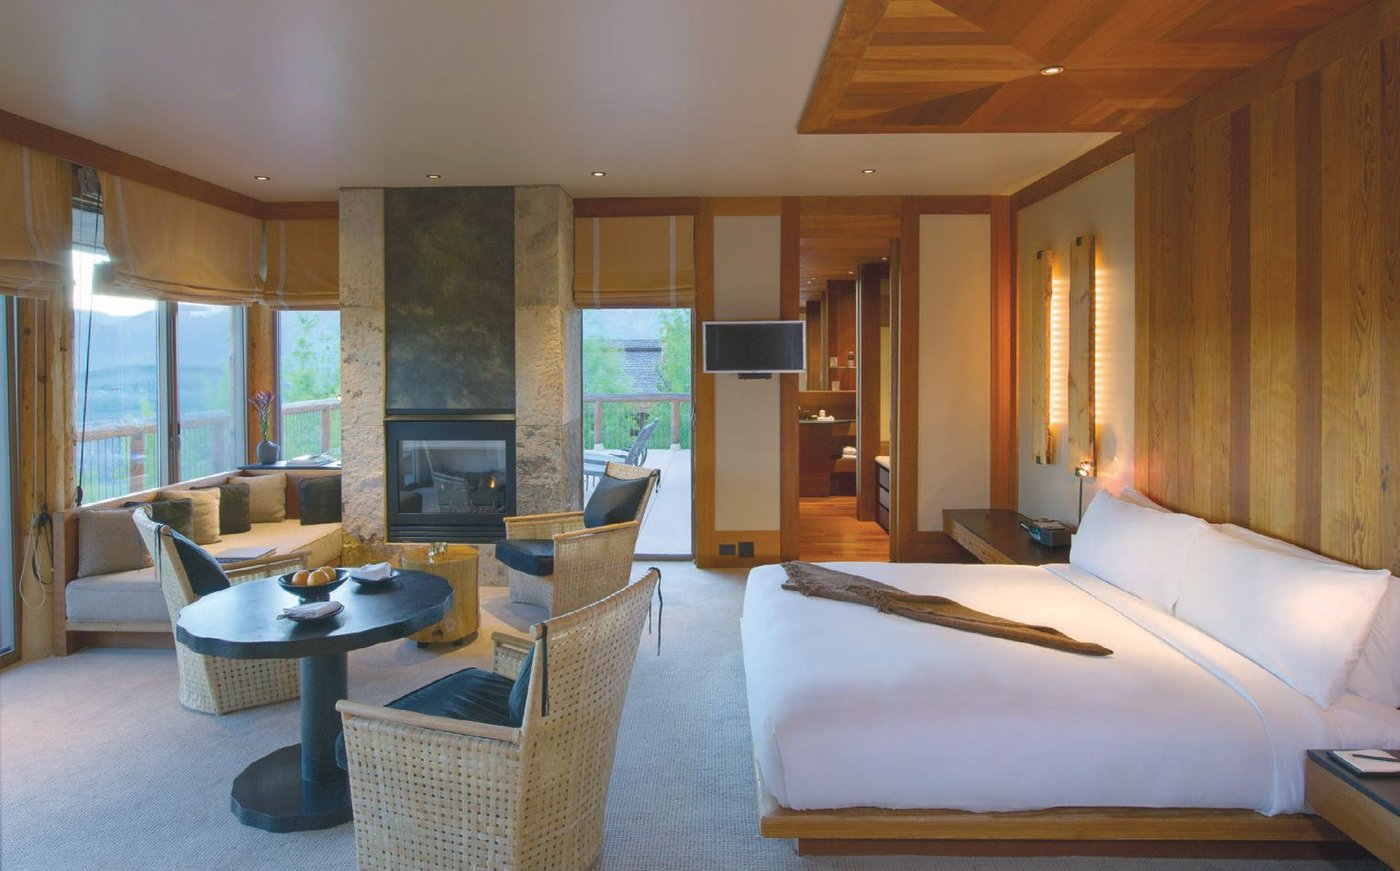 The suites at Amangani optimize mountain views with floor-to-ceiling windows and feature crisp, geometric lines, plenty of seating areas and optimal space for relaxation PHOTO COURTESY OF AMAN